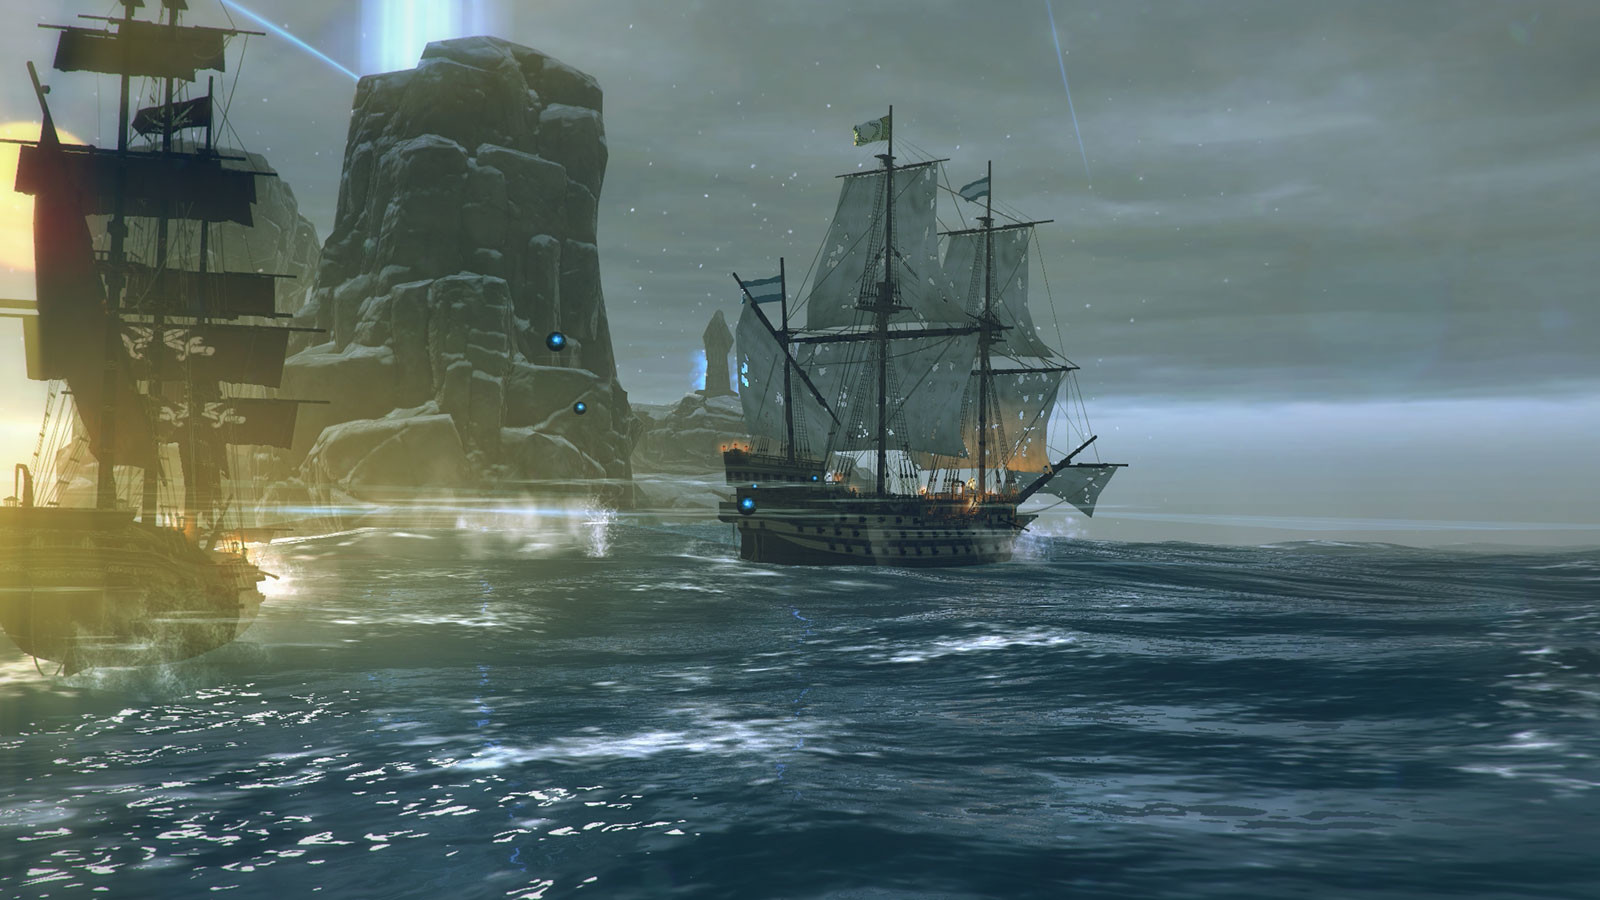 Tempest: Pirate Action RPG [Steam CD Key] for PC and Mac - Buy now